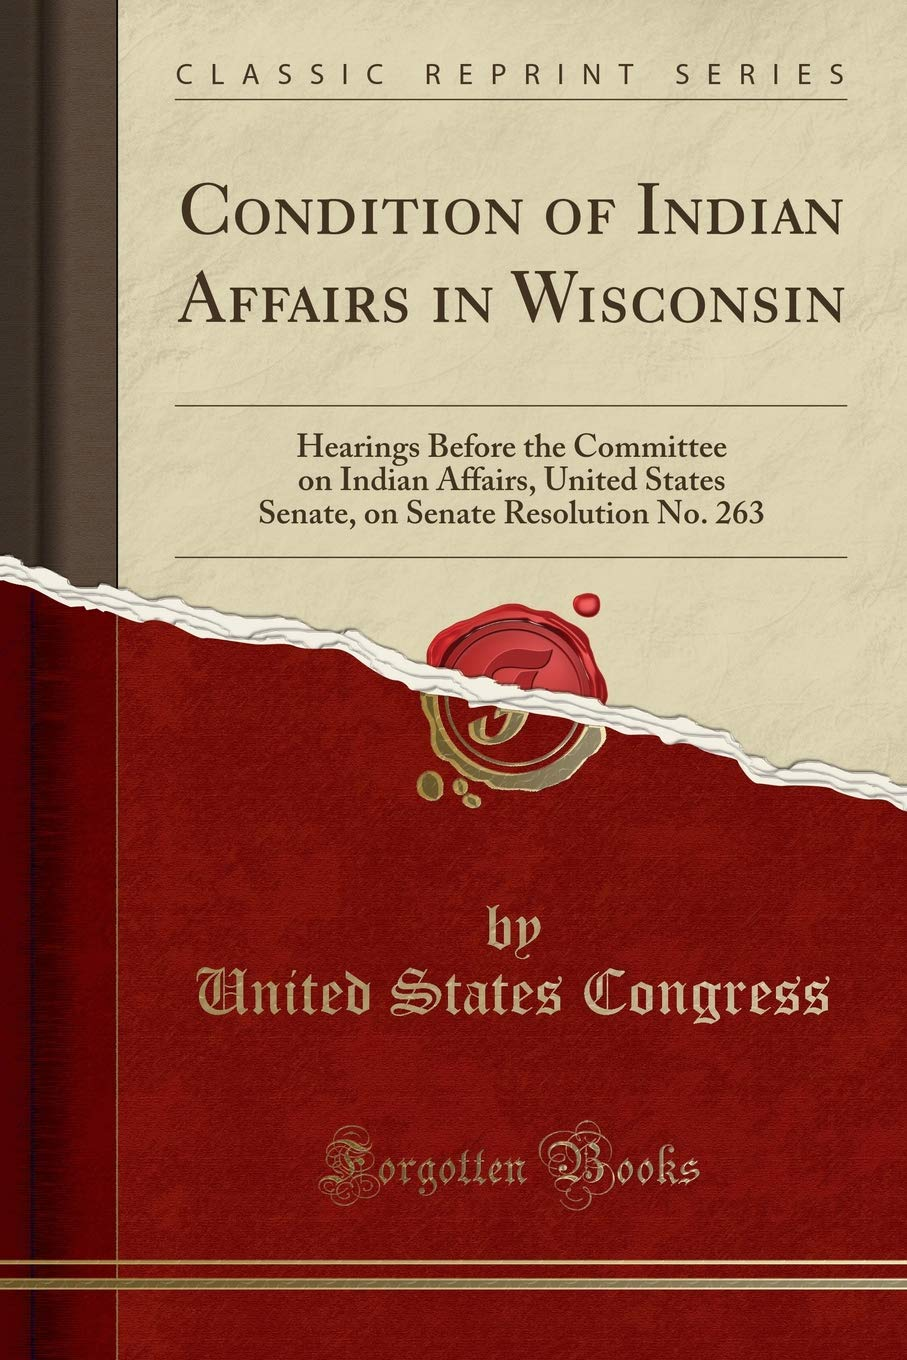 Condition of Indian Affairs in Wisconsin: Hearings Before the Committee on Indian Affairs, United States Senate, on Senate Resolution No. 263 (Classic Reprint) pdf epub